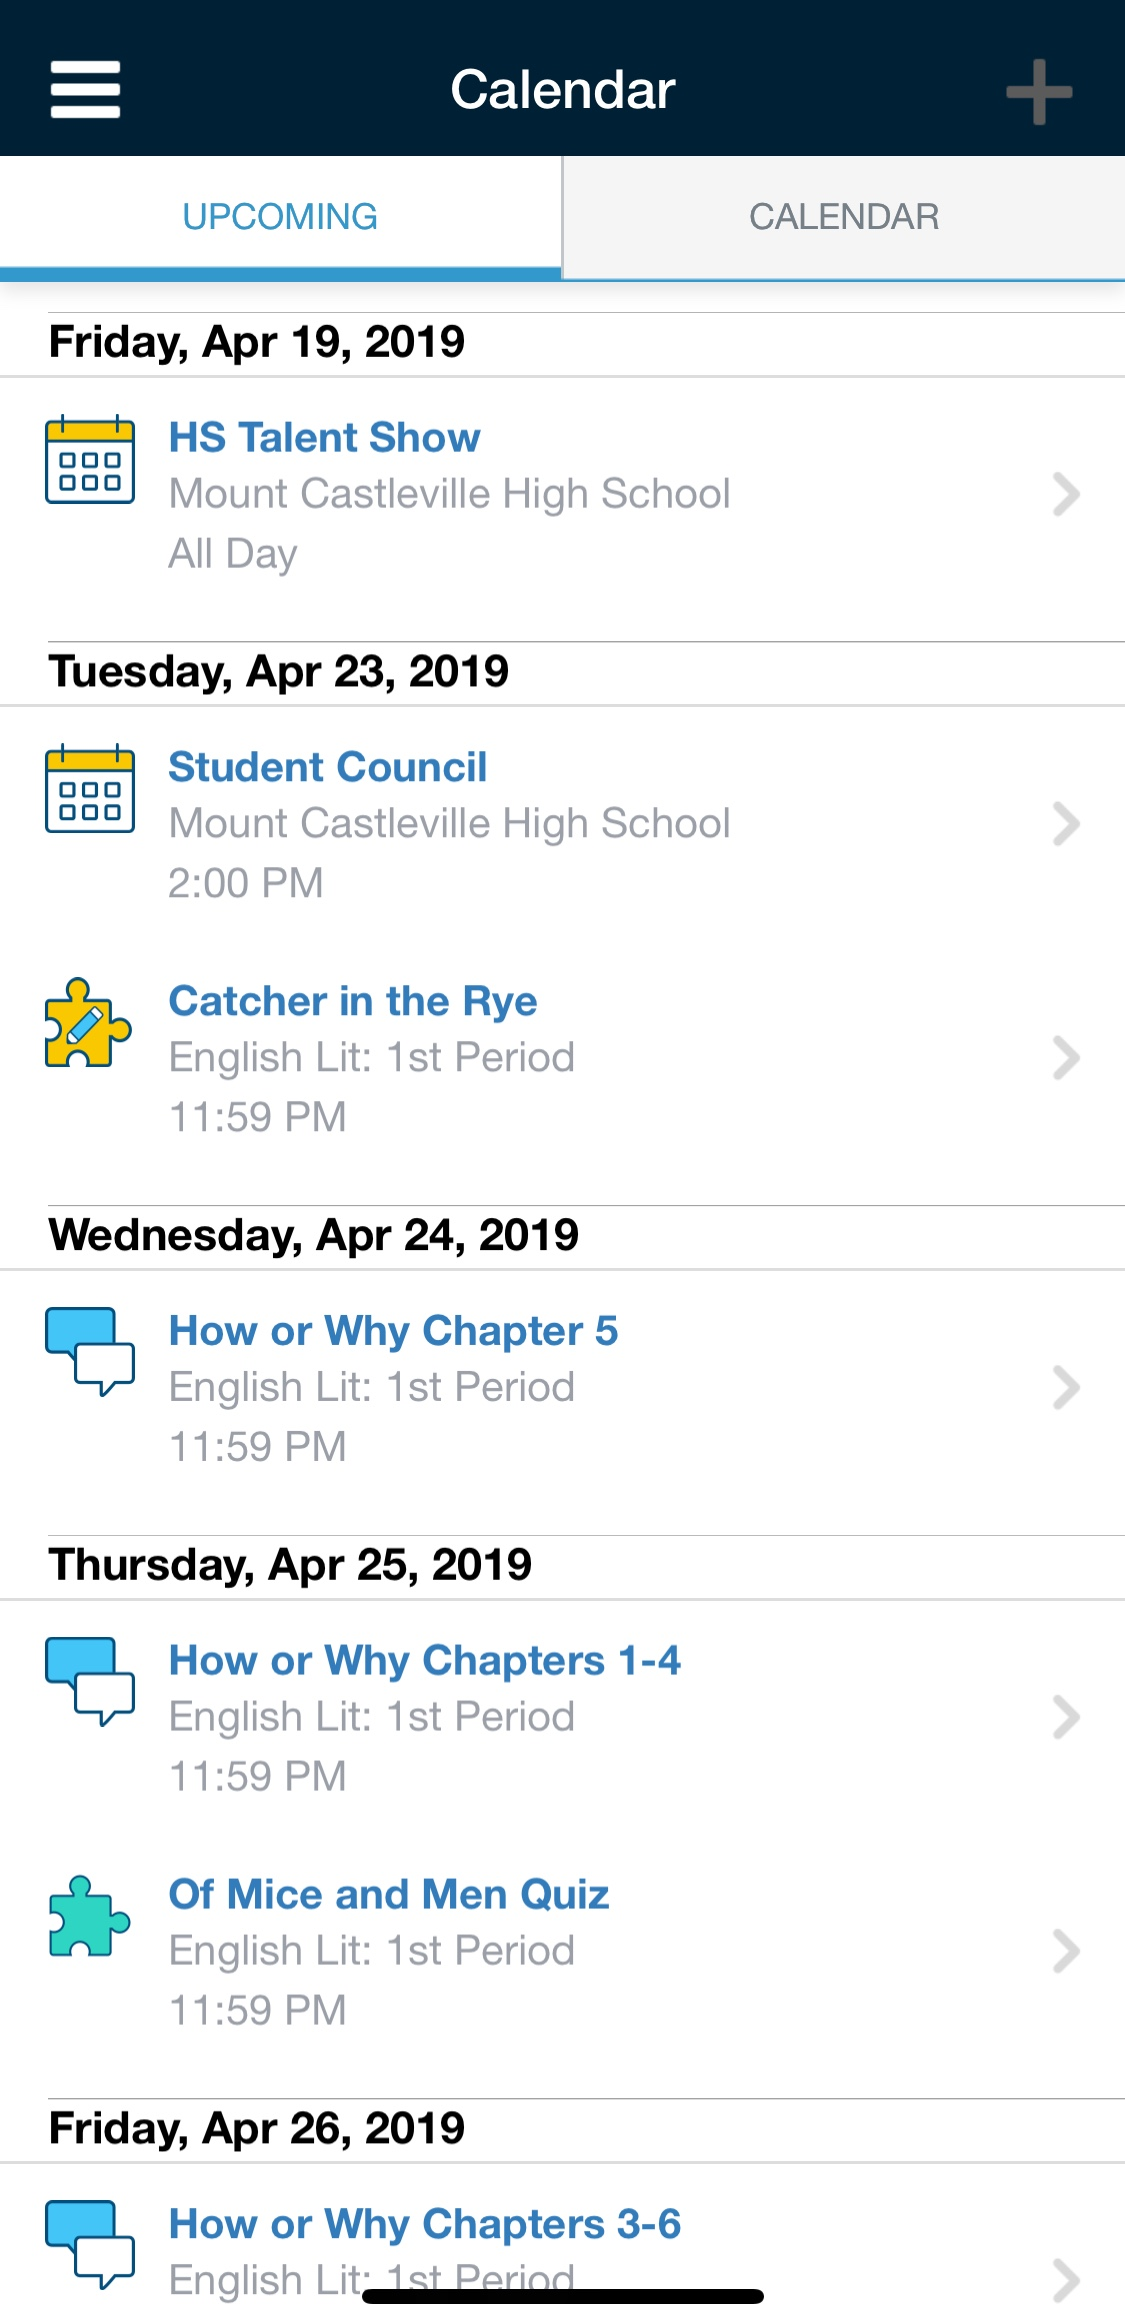 17_iPhoneX_6.7.0_Nav_Menu_Calendar_Upcoming_Instructor.jpg